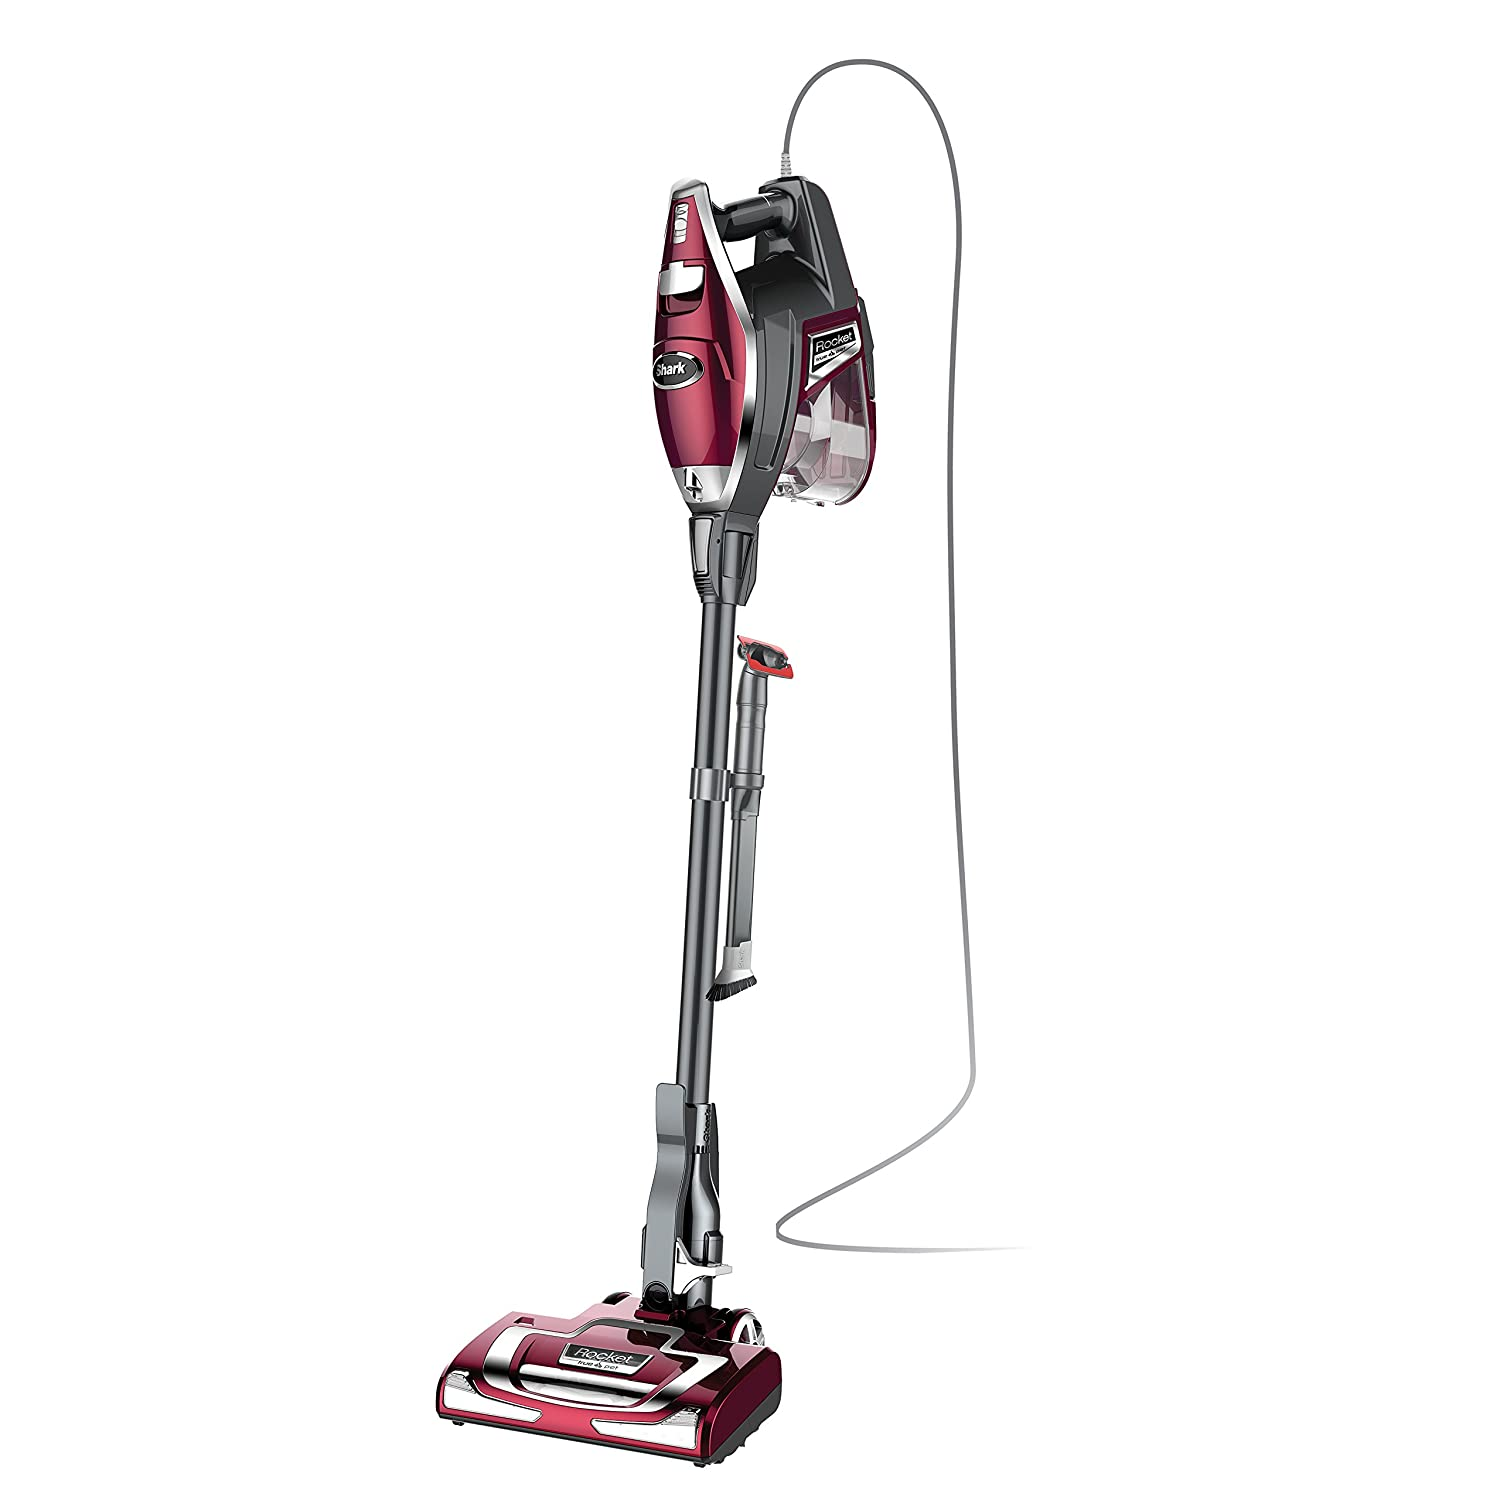 Top 10 Best Shark Vacuum Cleaner (2020 Reviews & Buying Guide) 8